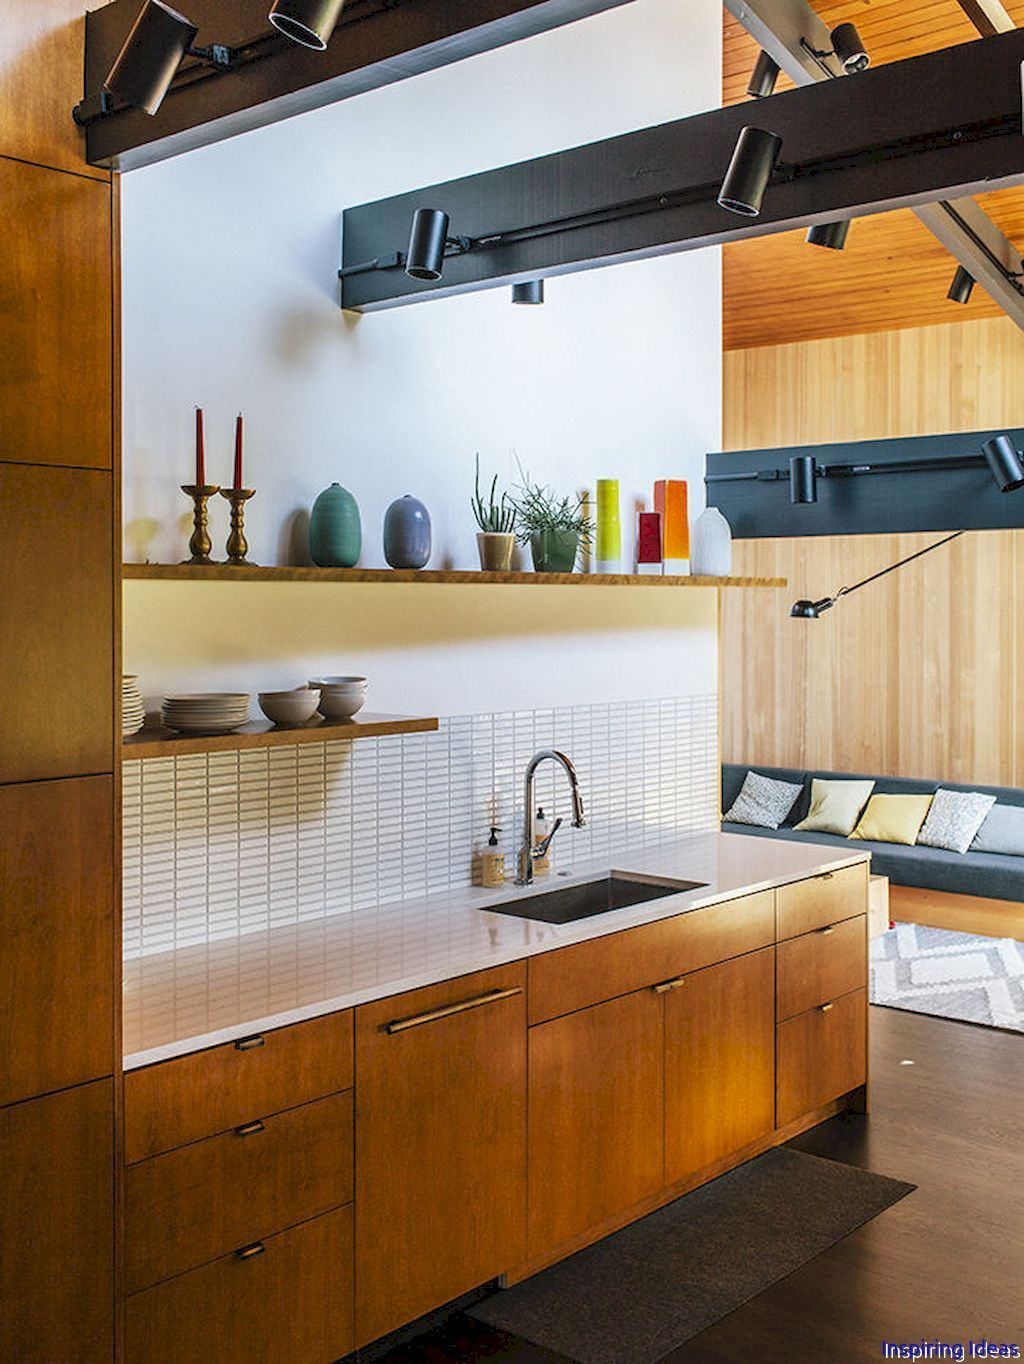 75 Stunning Midcentury Modern Kitchen Backsplash Design Ideas